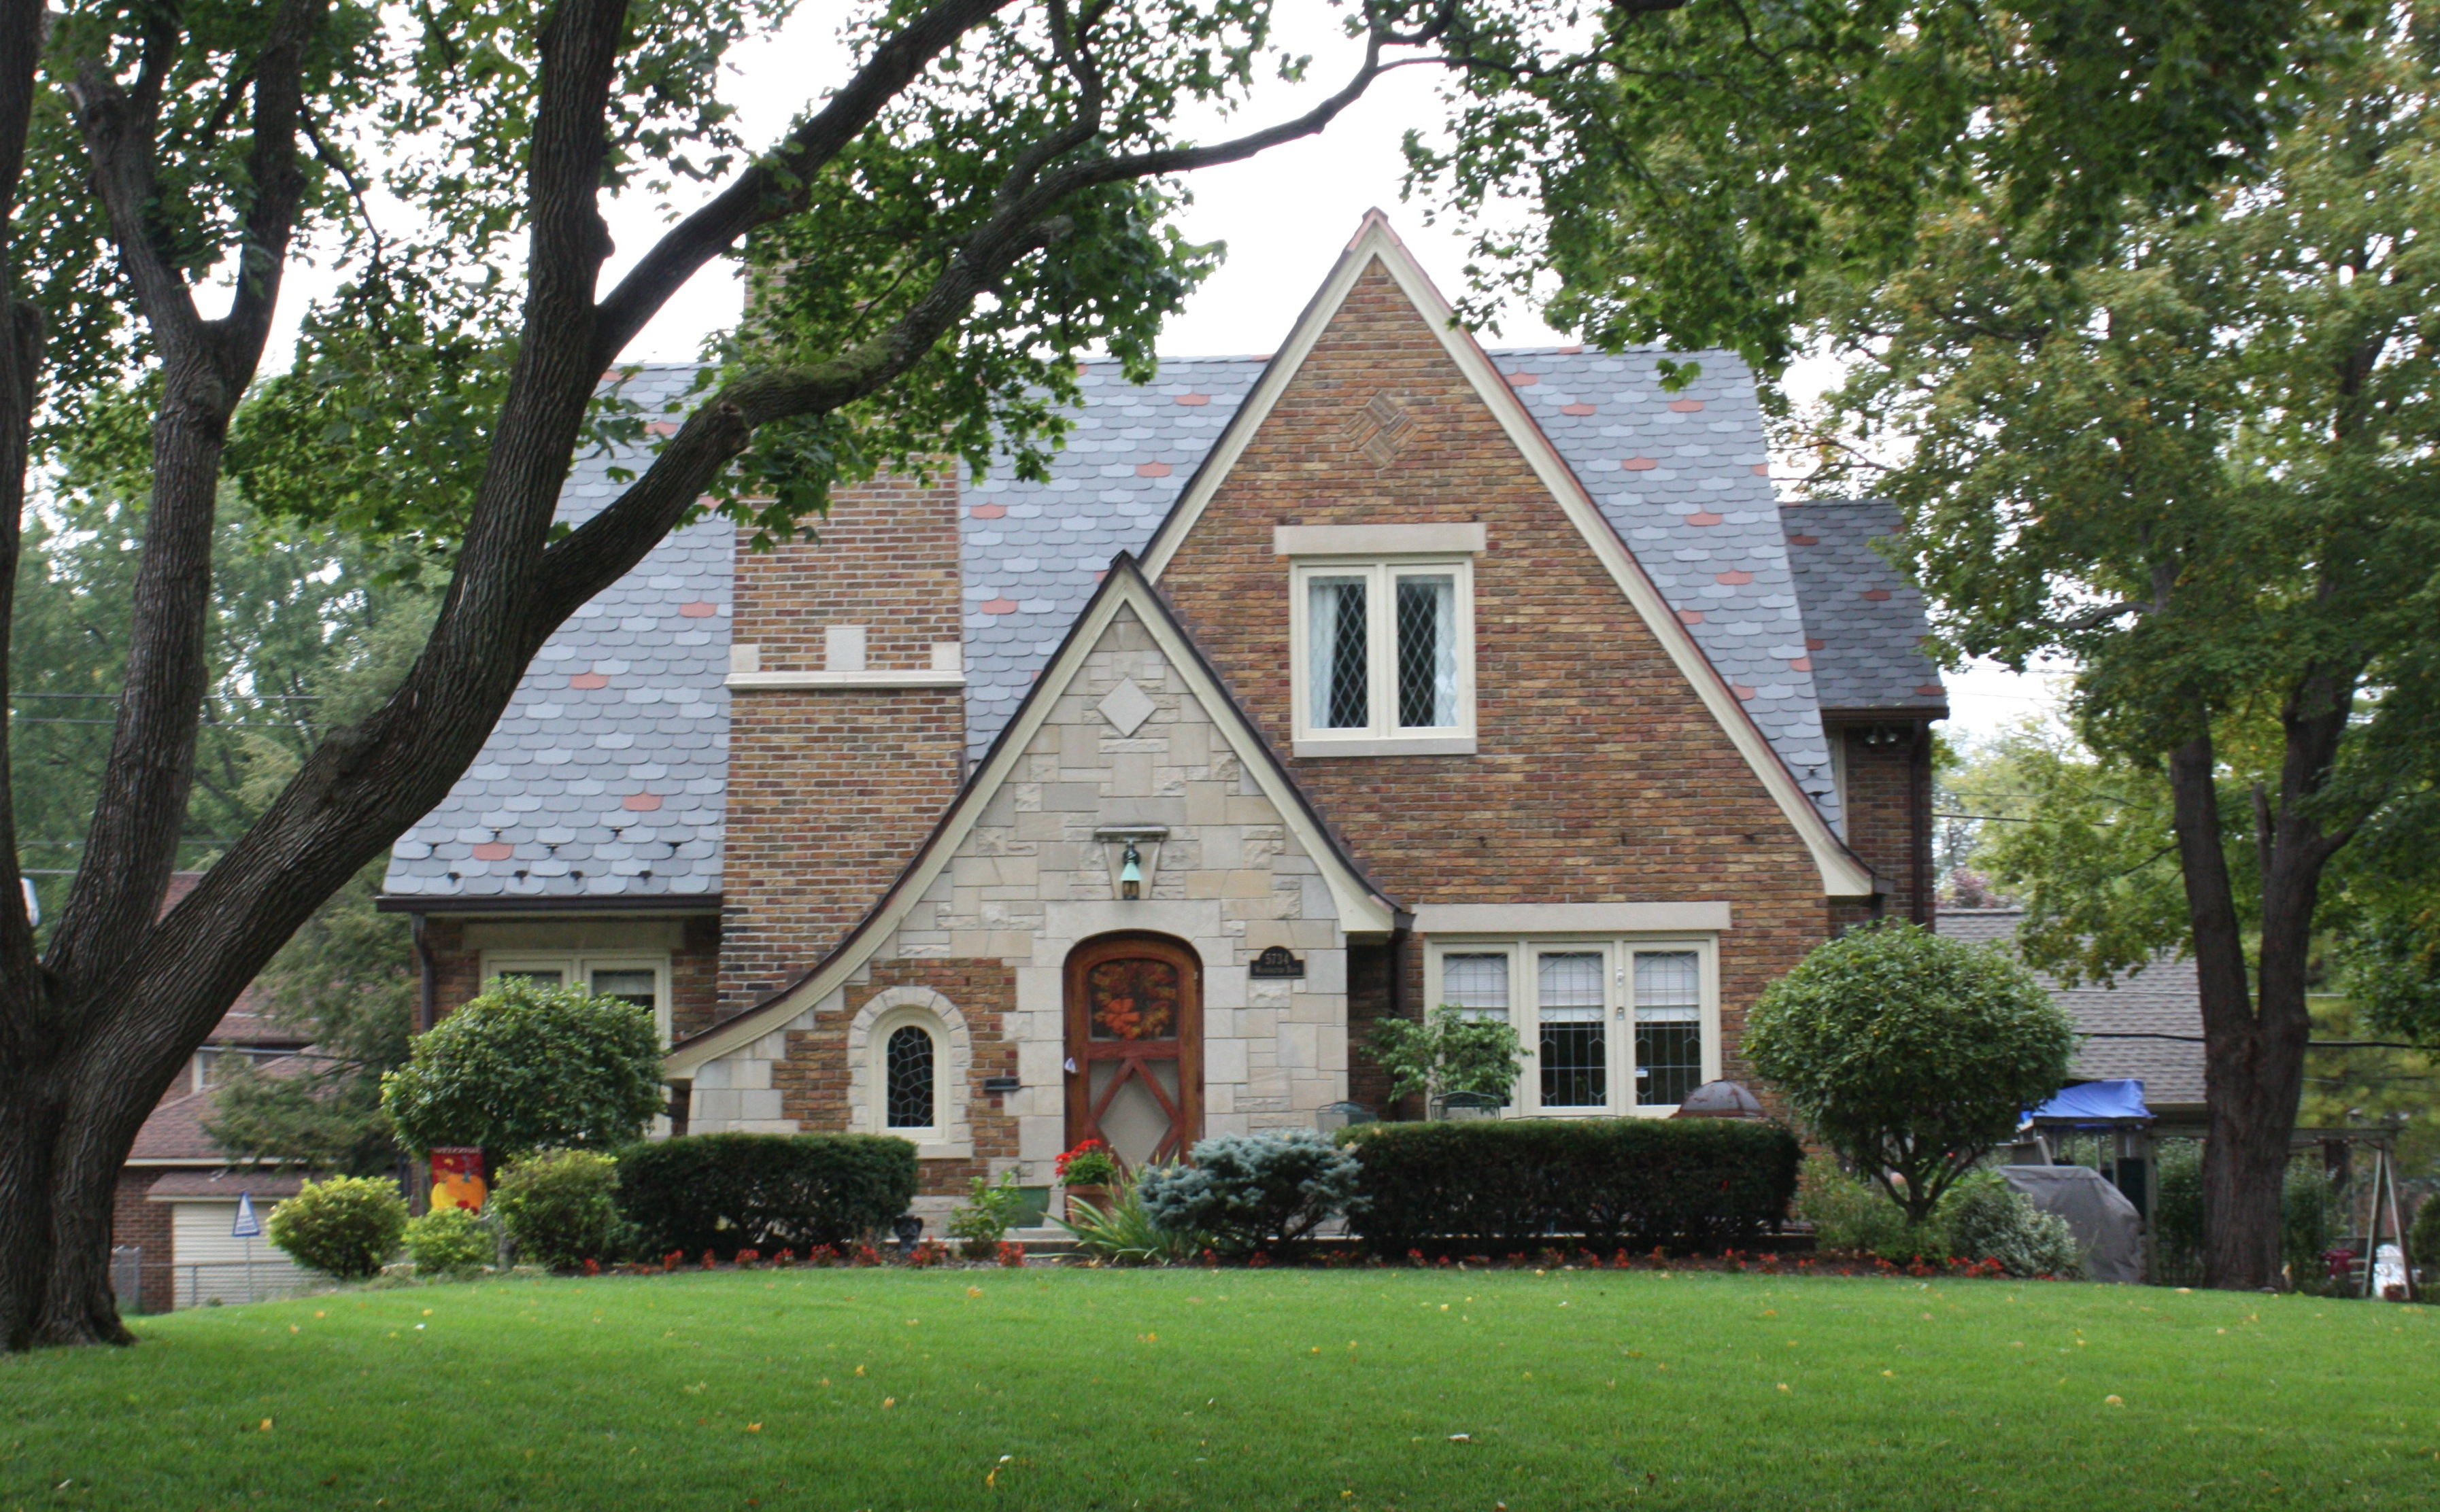 Building language tudor revival historic indianapolis - What makes a house a tudor ...